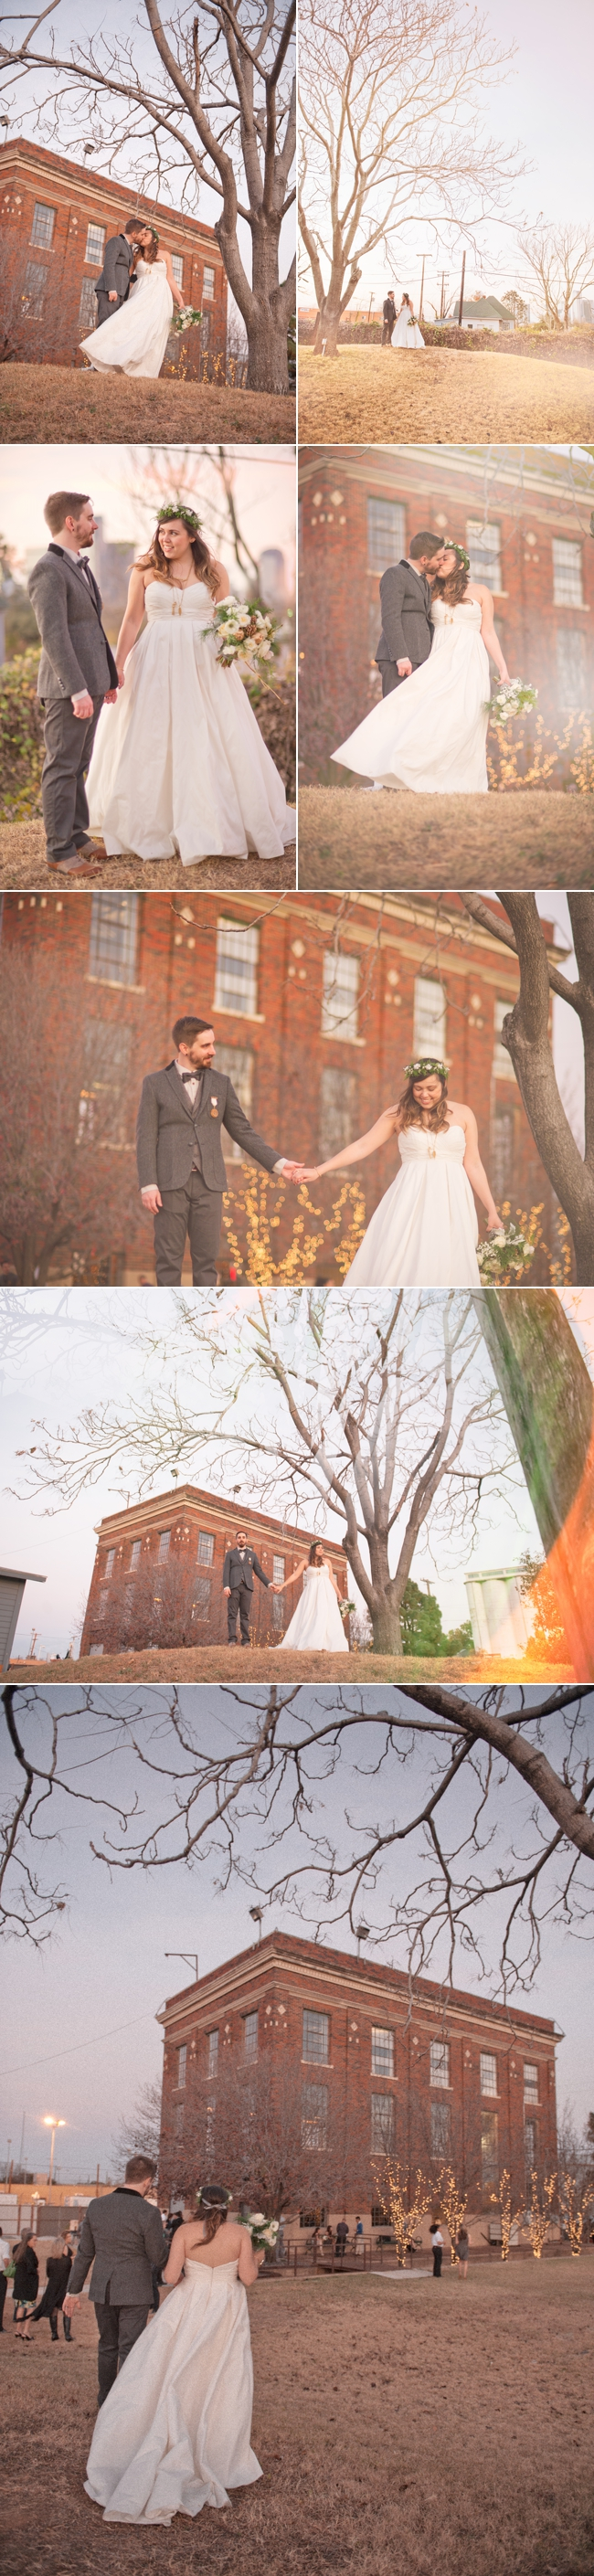 Wedding Photography dfw